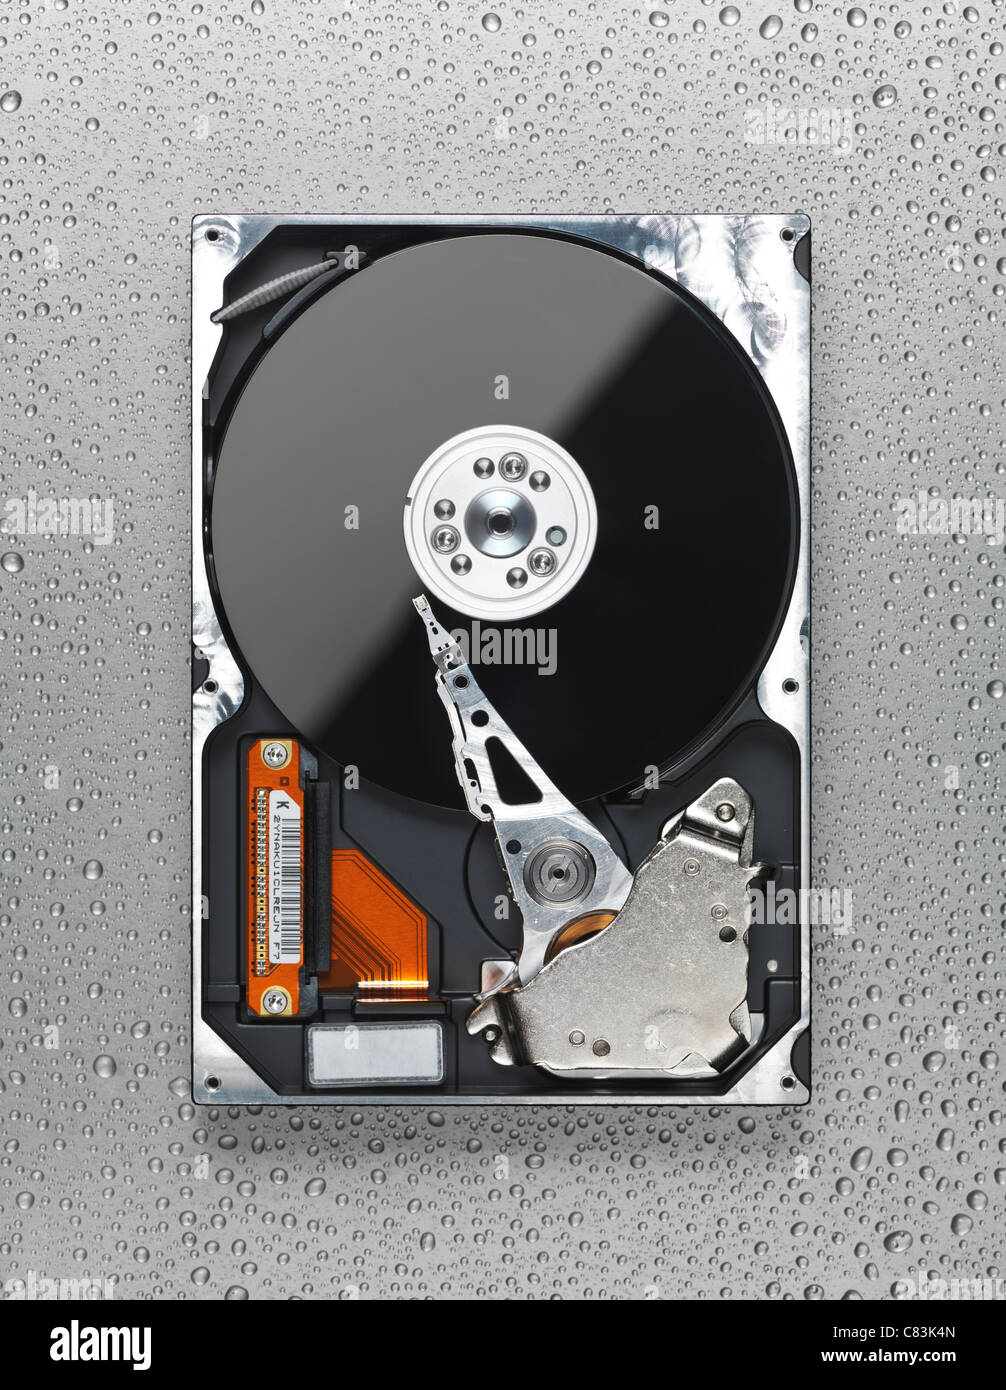 Open computer hard disk drive HDD on wet metal surface - Stock Image